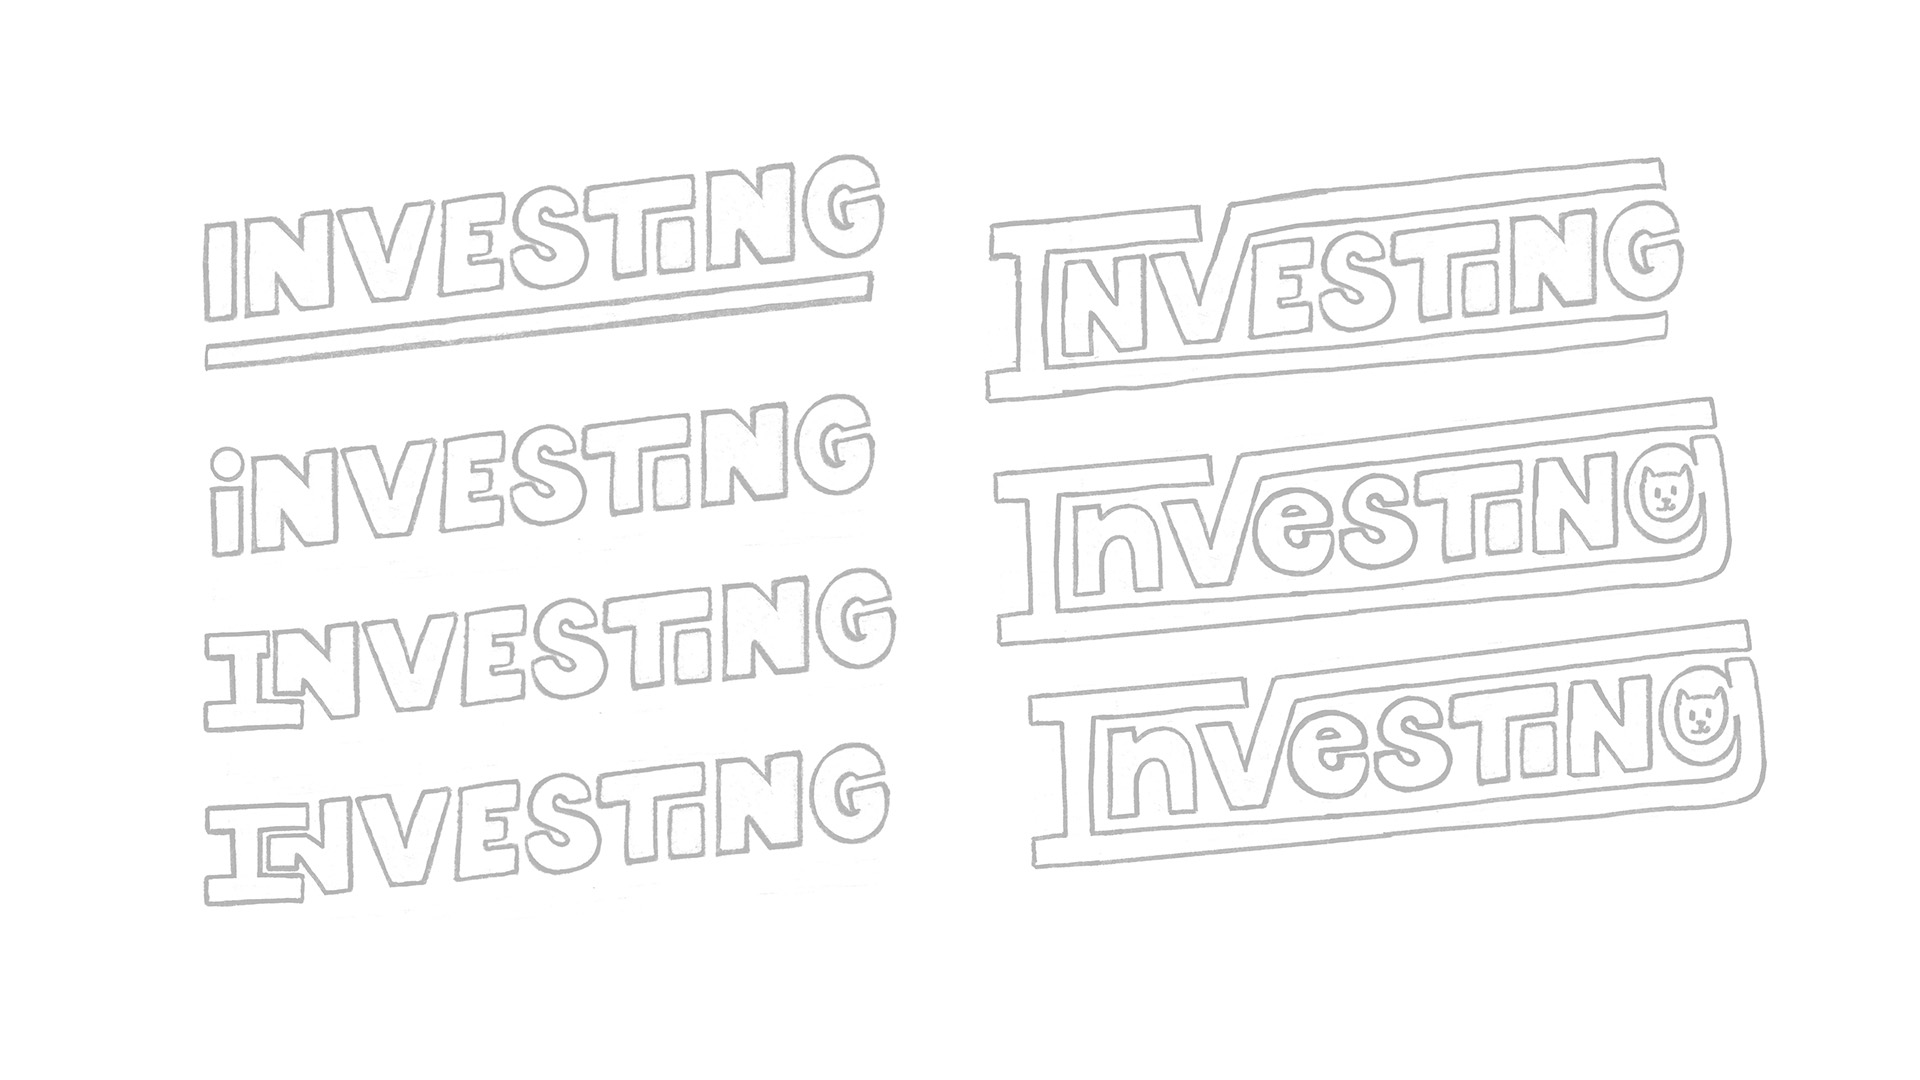 roofstudio_juni-learning_investing-02-3